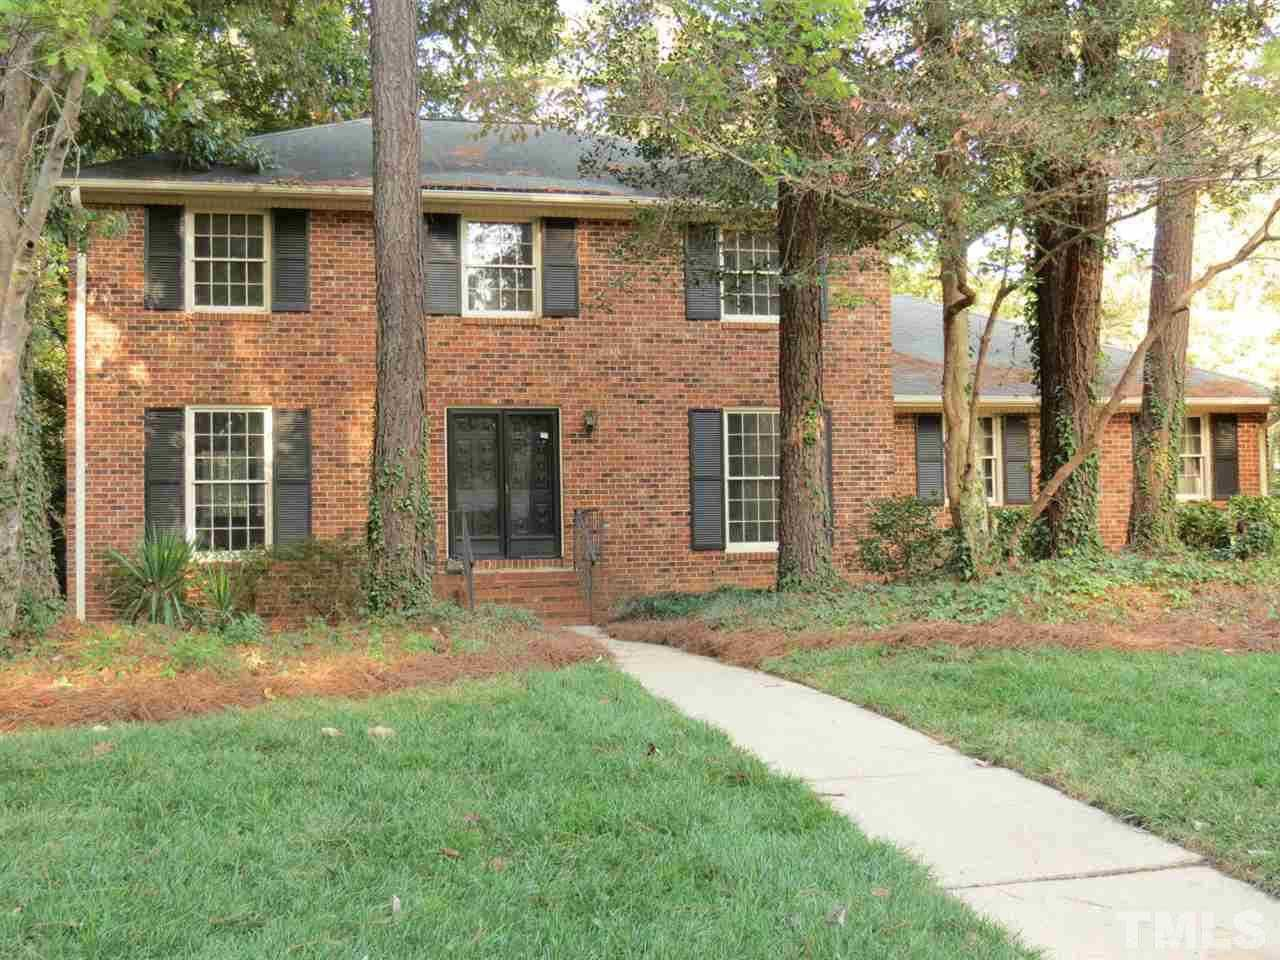 $395,000 - 4Br/3Ba -  for Sale in Quail Hollow, Raleigh